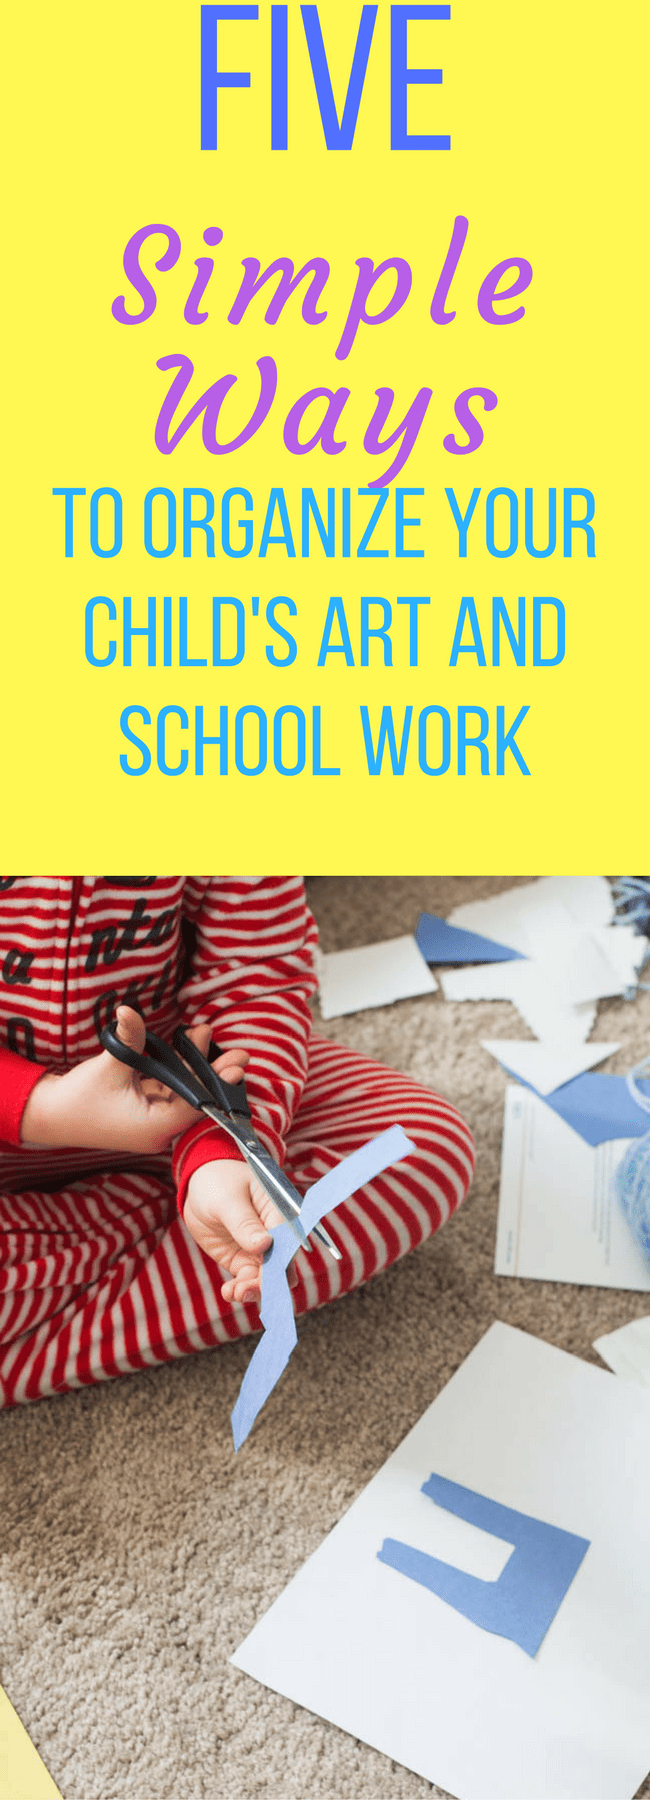 Organize artwork / organize kid's papers / organization / back to school / school organization / preschool tips / homeschool / organize home